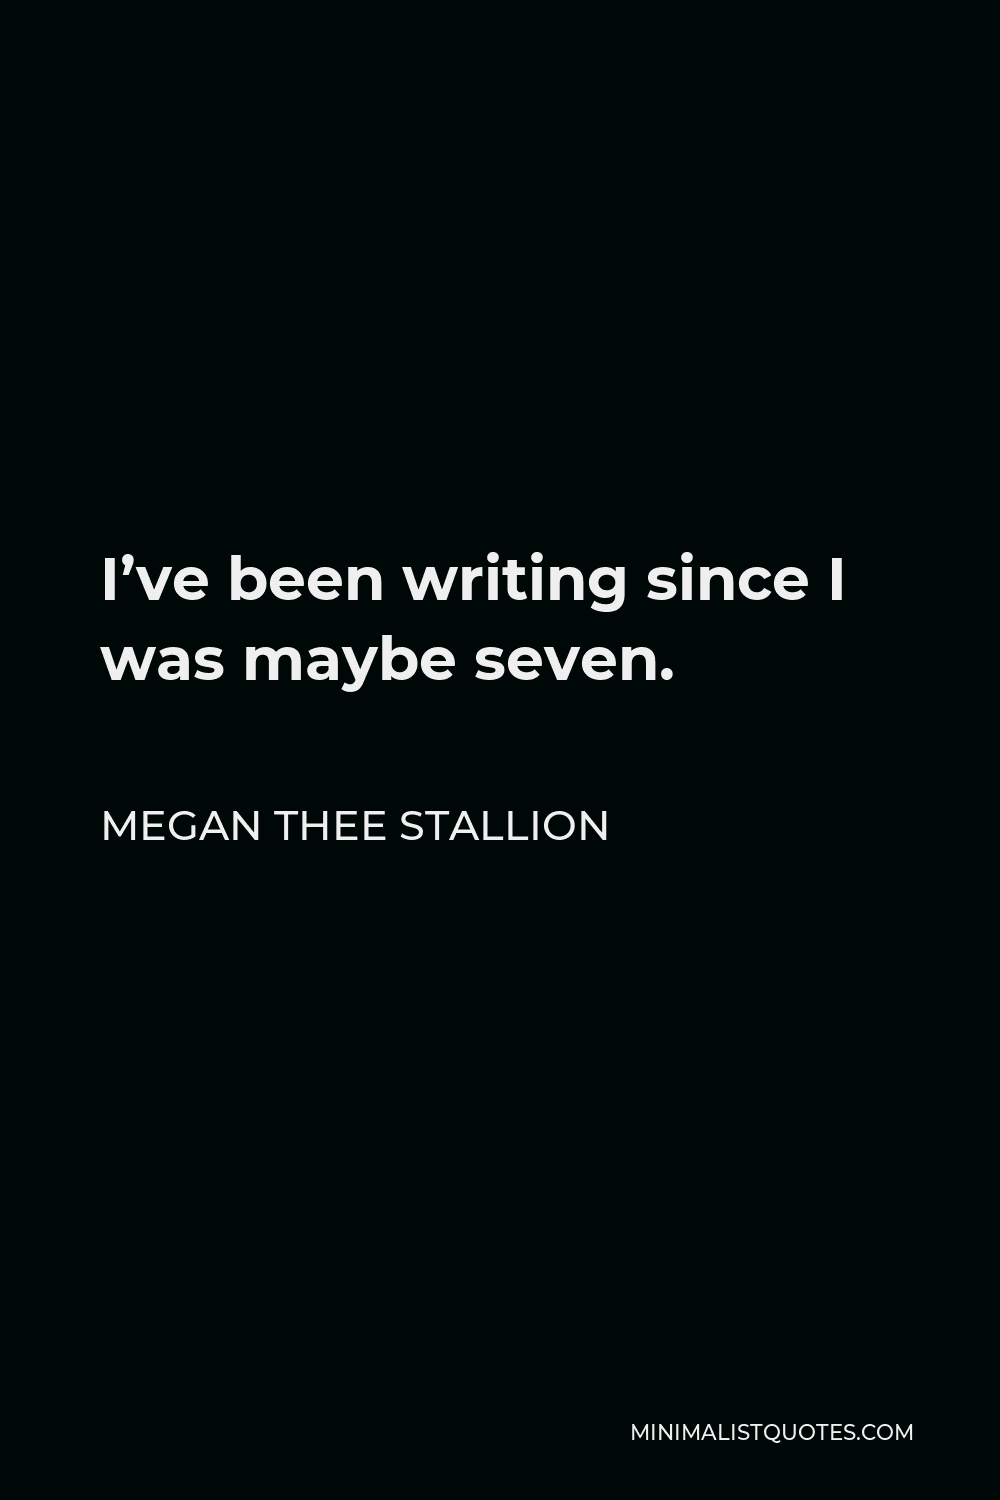 Megan Thee Stallion Quote - I've been writing since I was maybe seven.